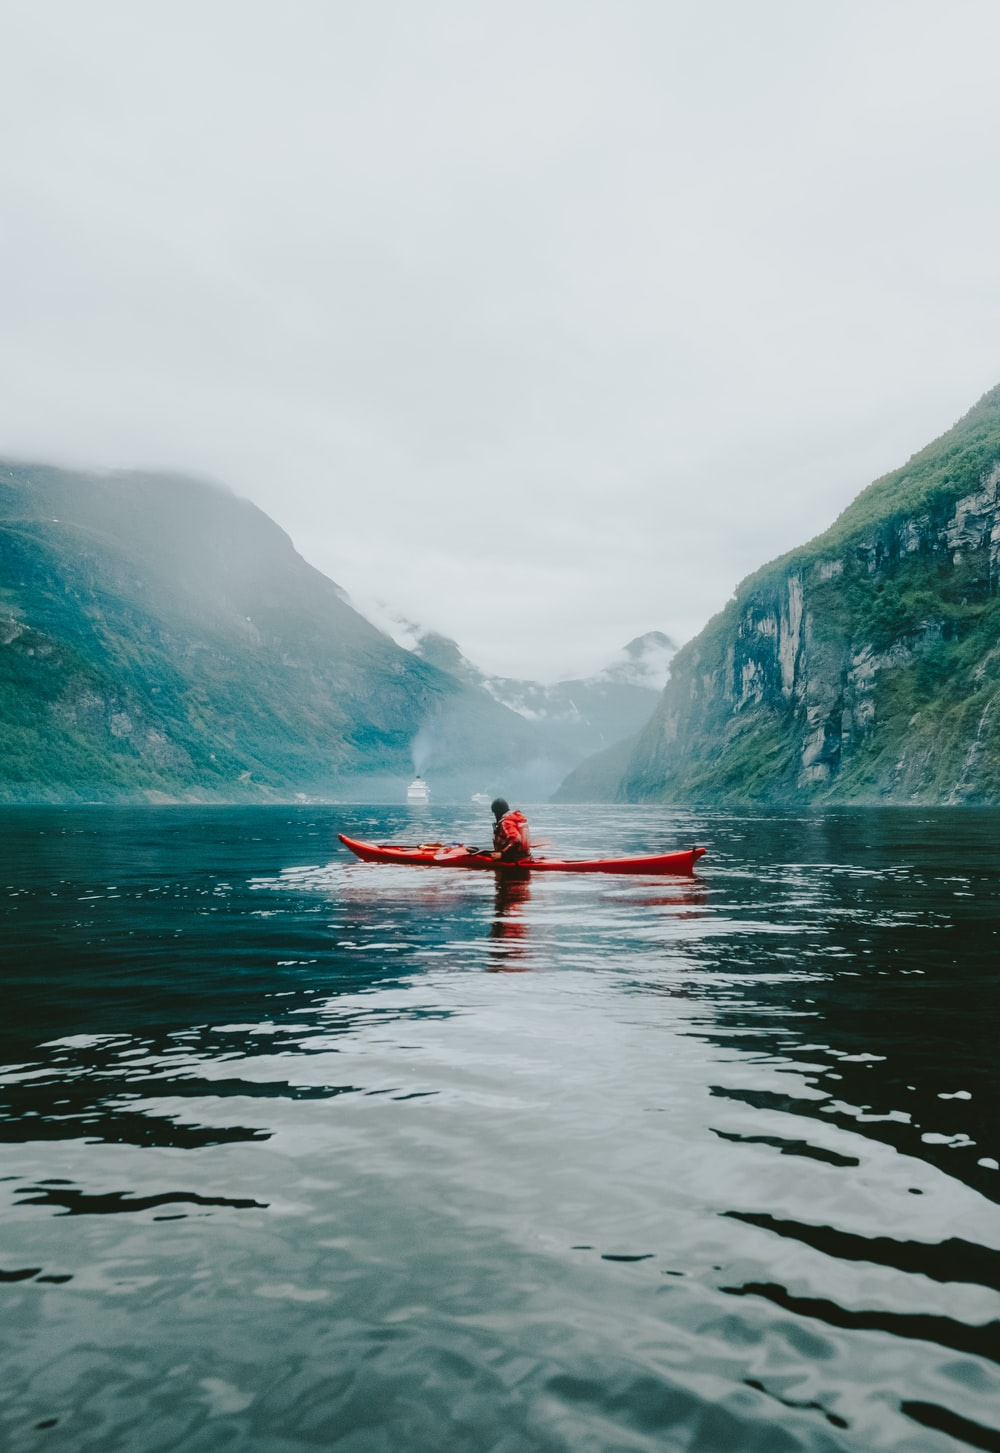 person riding kayak on body of water